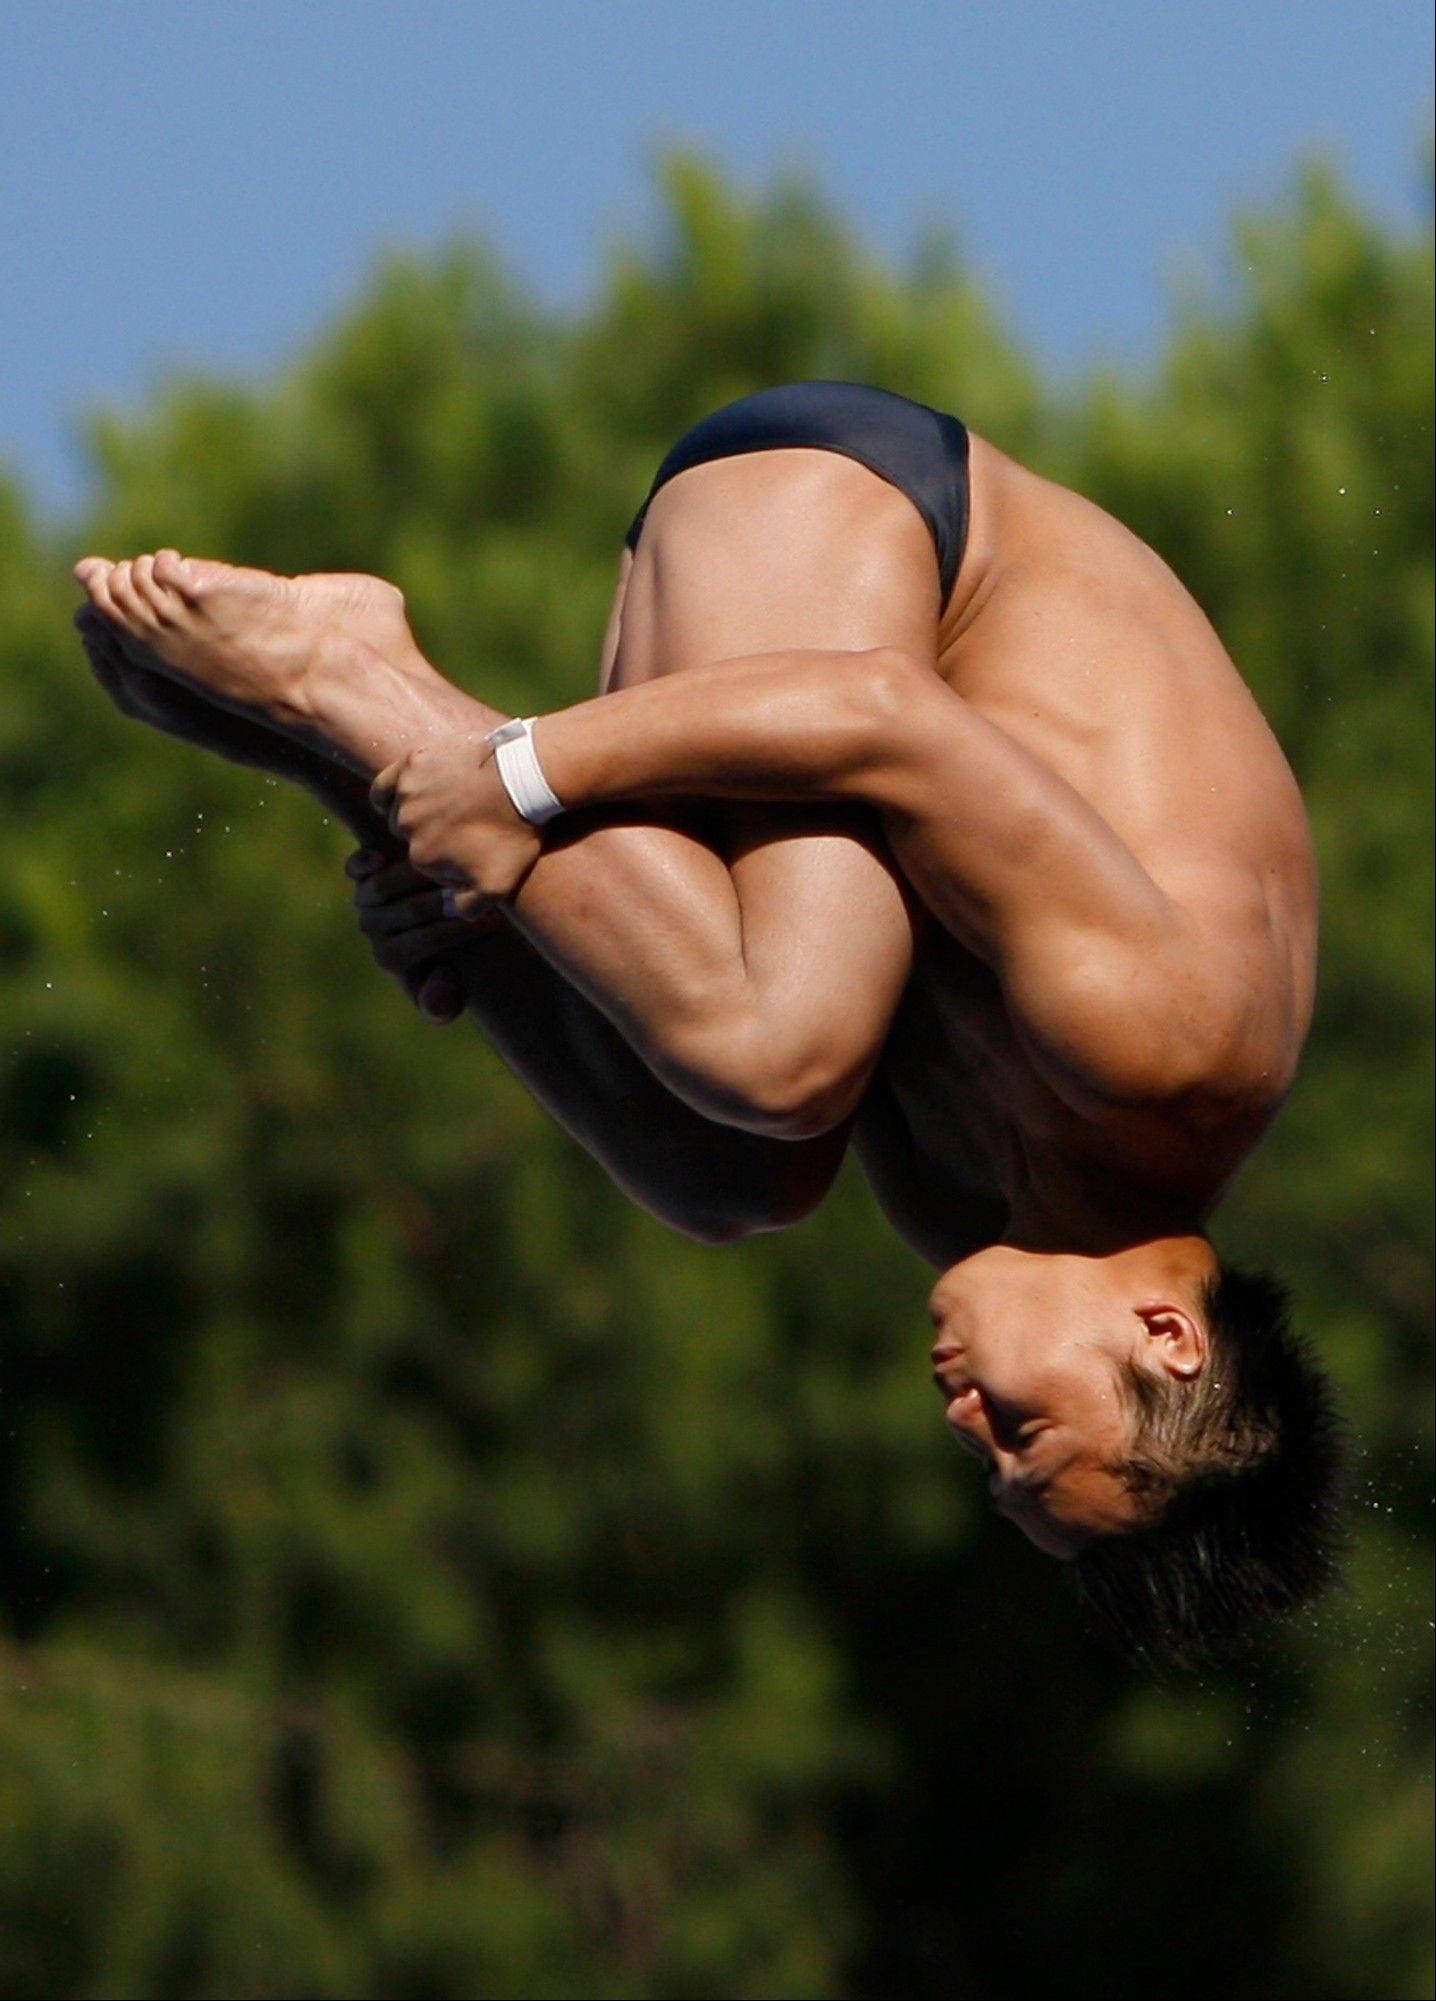 China's Qui Bo performs during the men's 10-meter platform diving event at the FINA Swimming World Championships in Rome in 2009. The Chinese diver, competing in his first Olympics, is the likely favorite in the event in London.